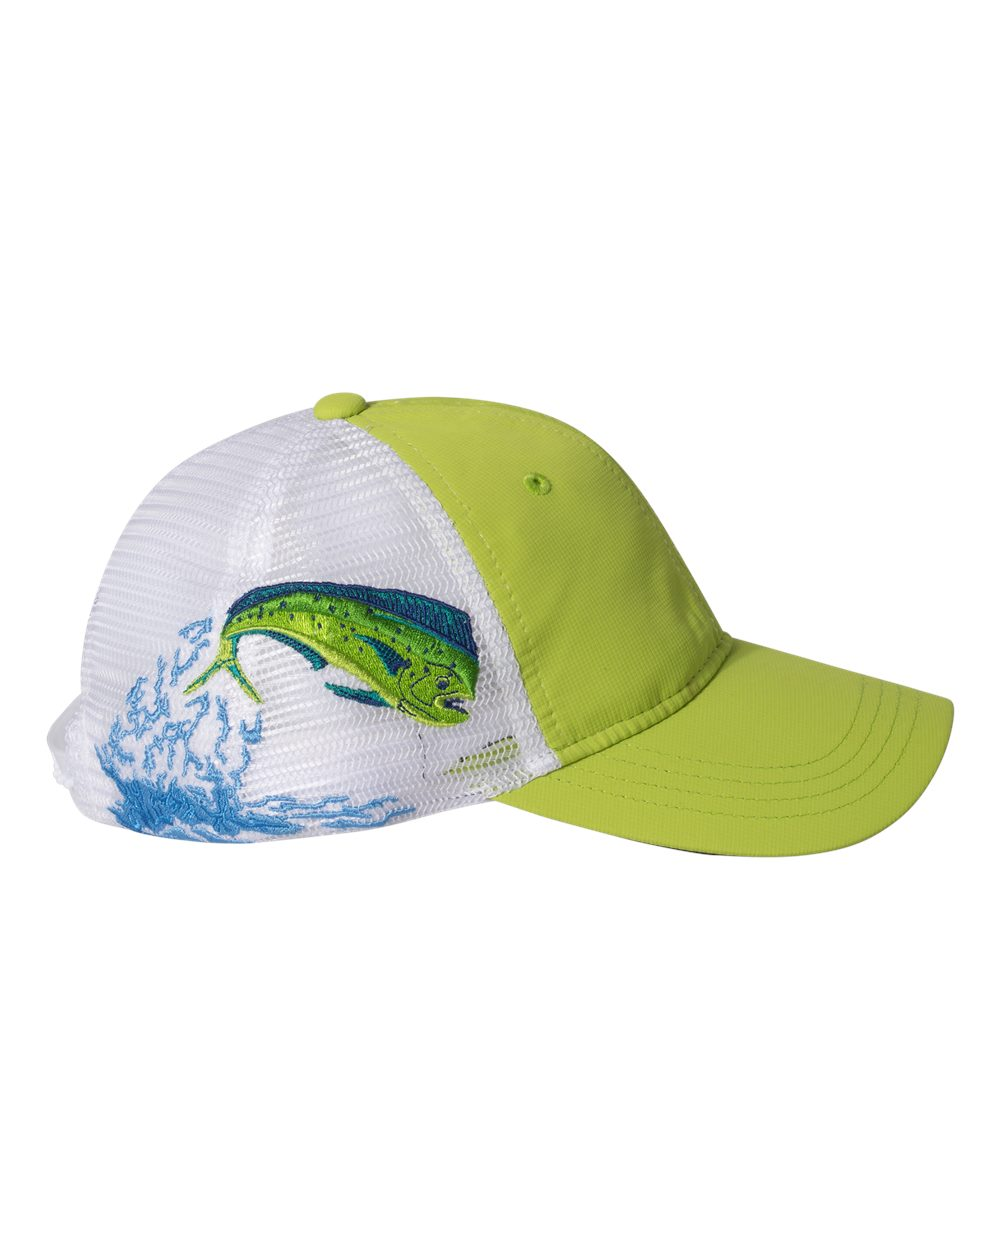 DRI DUCK 3453 - Dorado Performance Mesh Cap